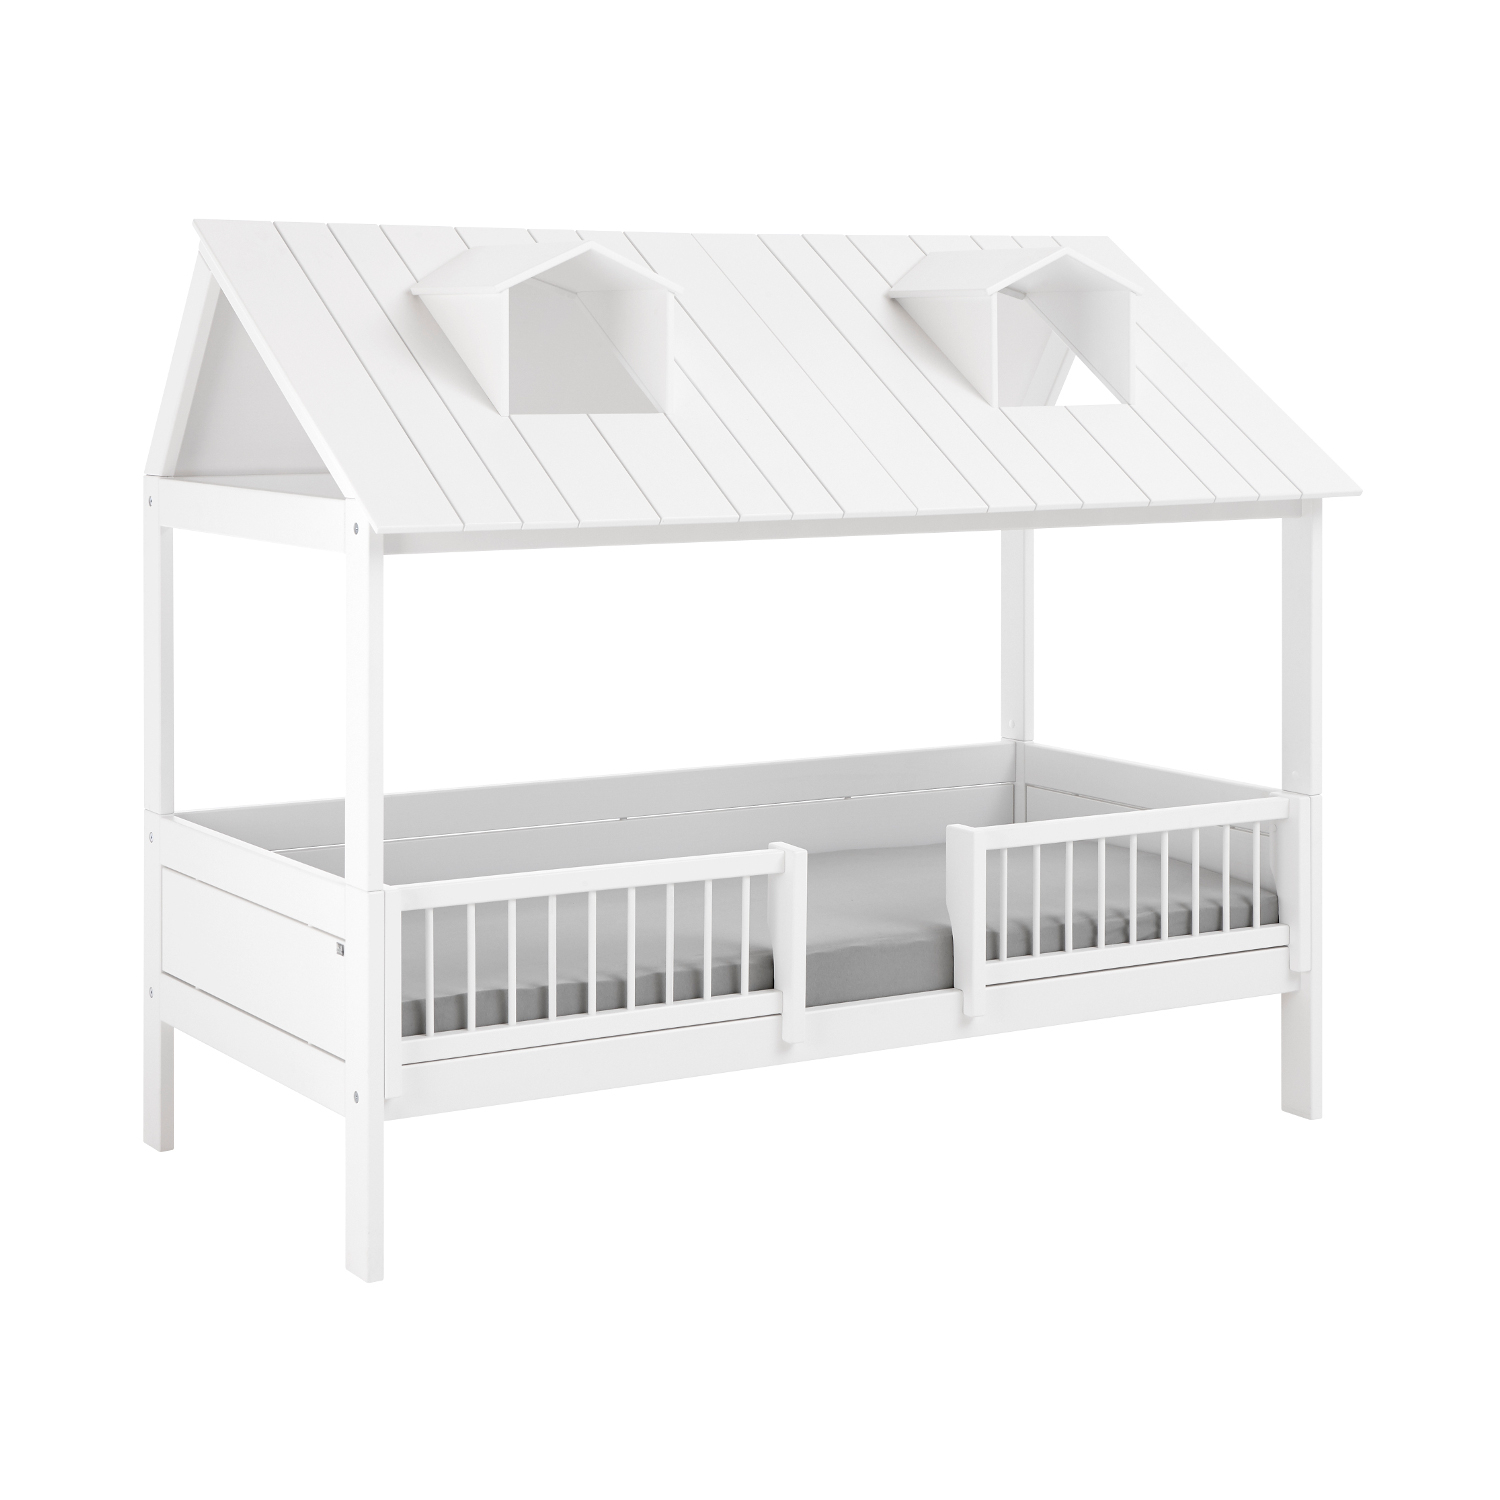 LIFETIME Kidsrooms Beach House Bed Luxe Wit Gelakt